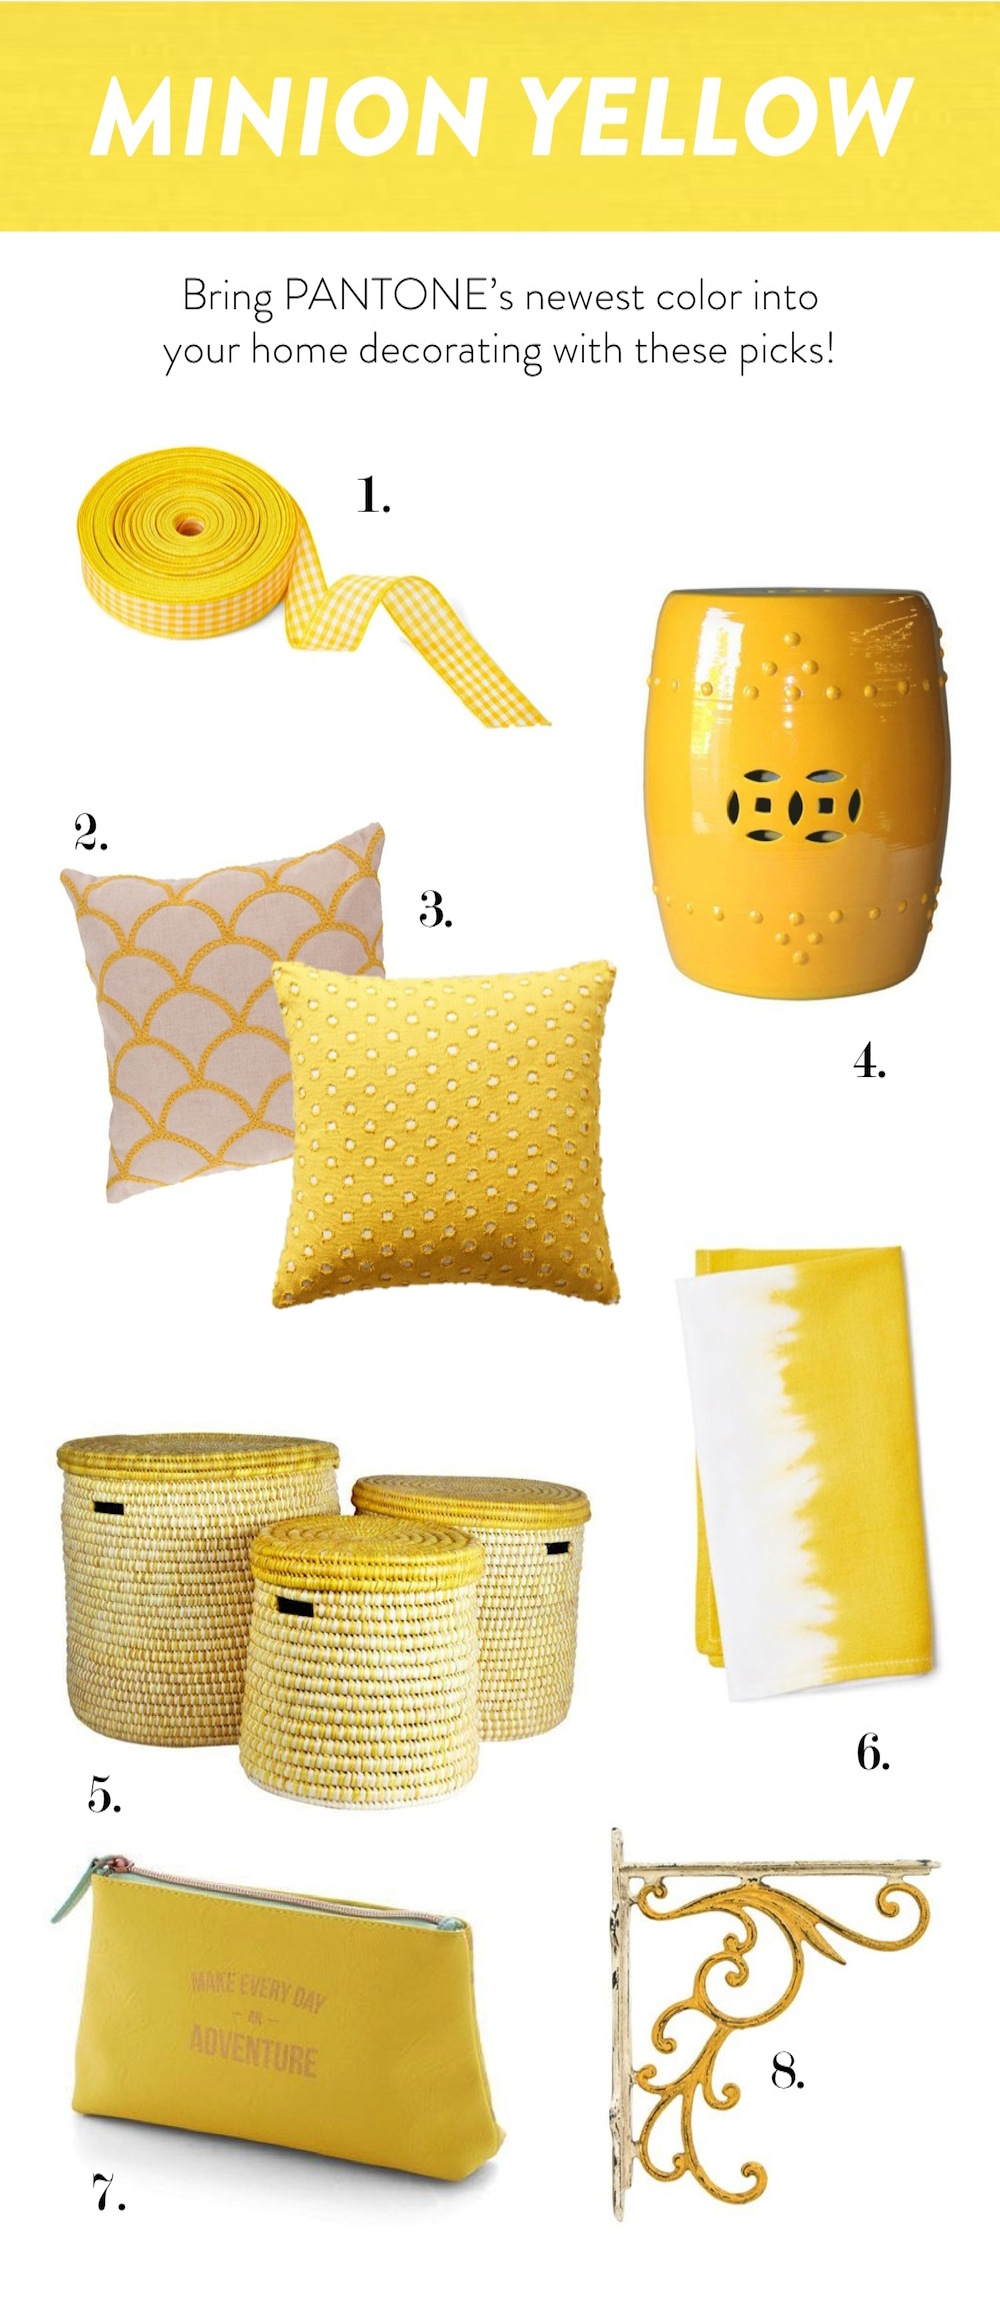 PANTONE Minion Yellow (Despicable Me) Home Decor Inspiration - Stevie Storck Design Co.